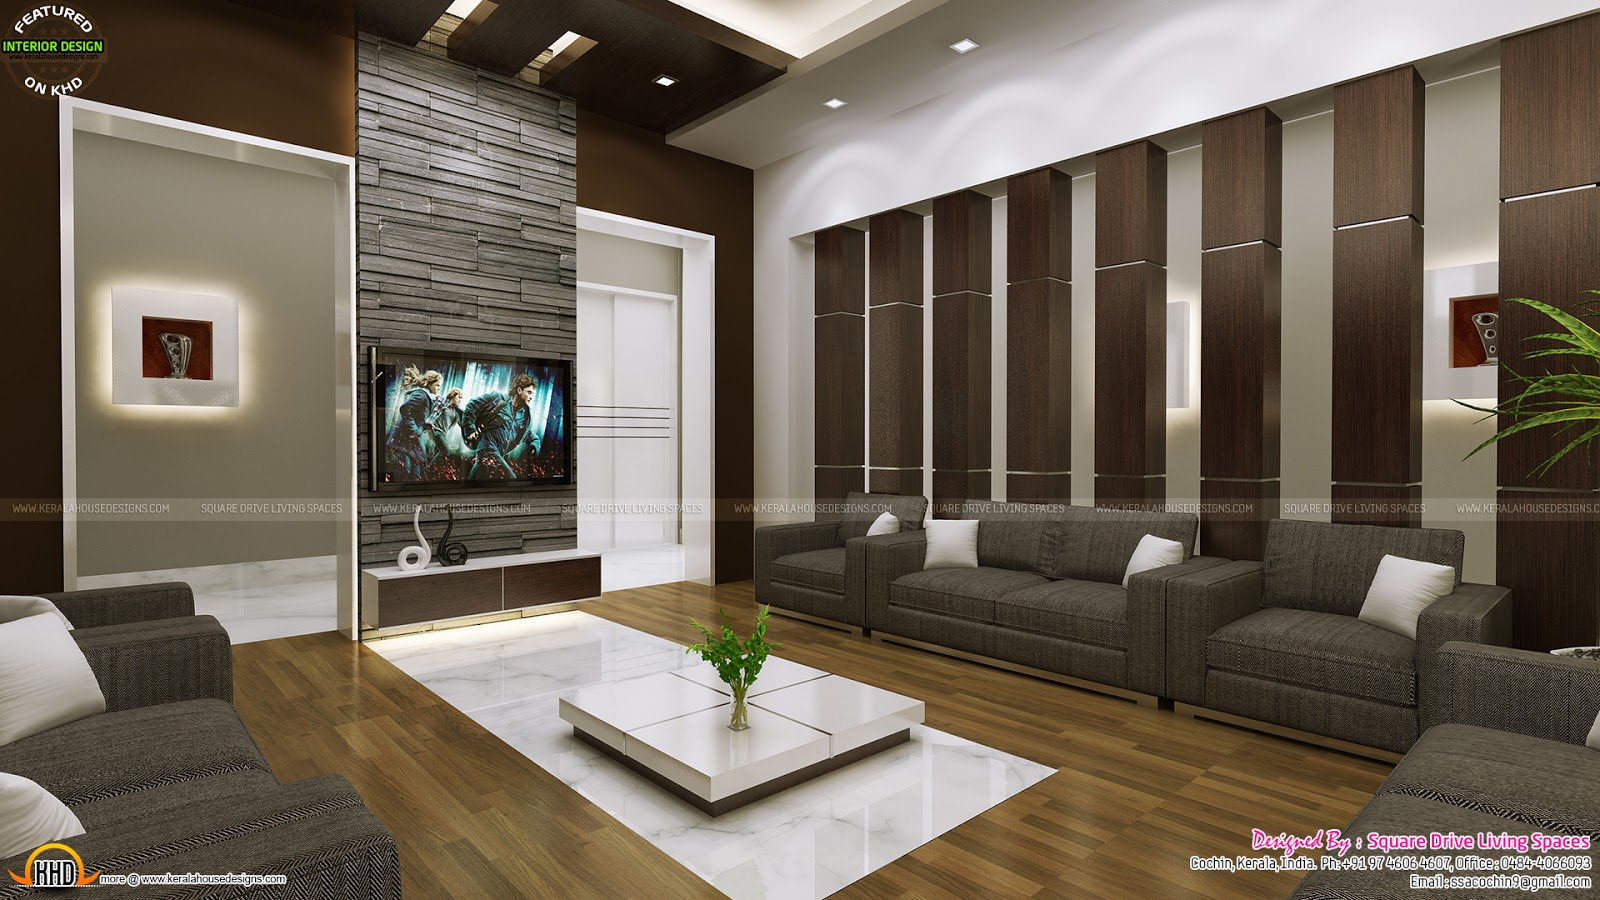 Attractive home interior ideas kerala home design and Design interior of house